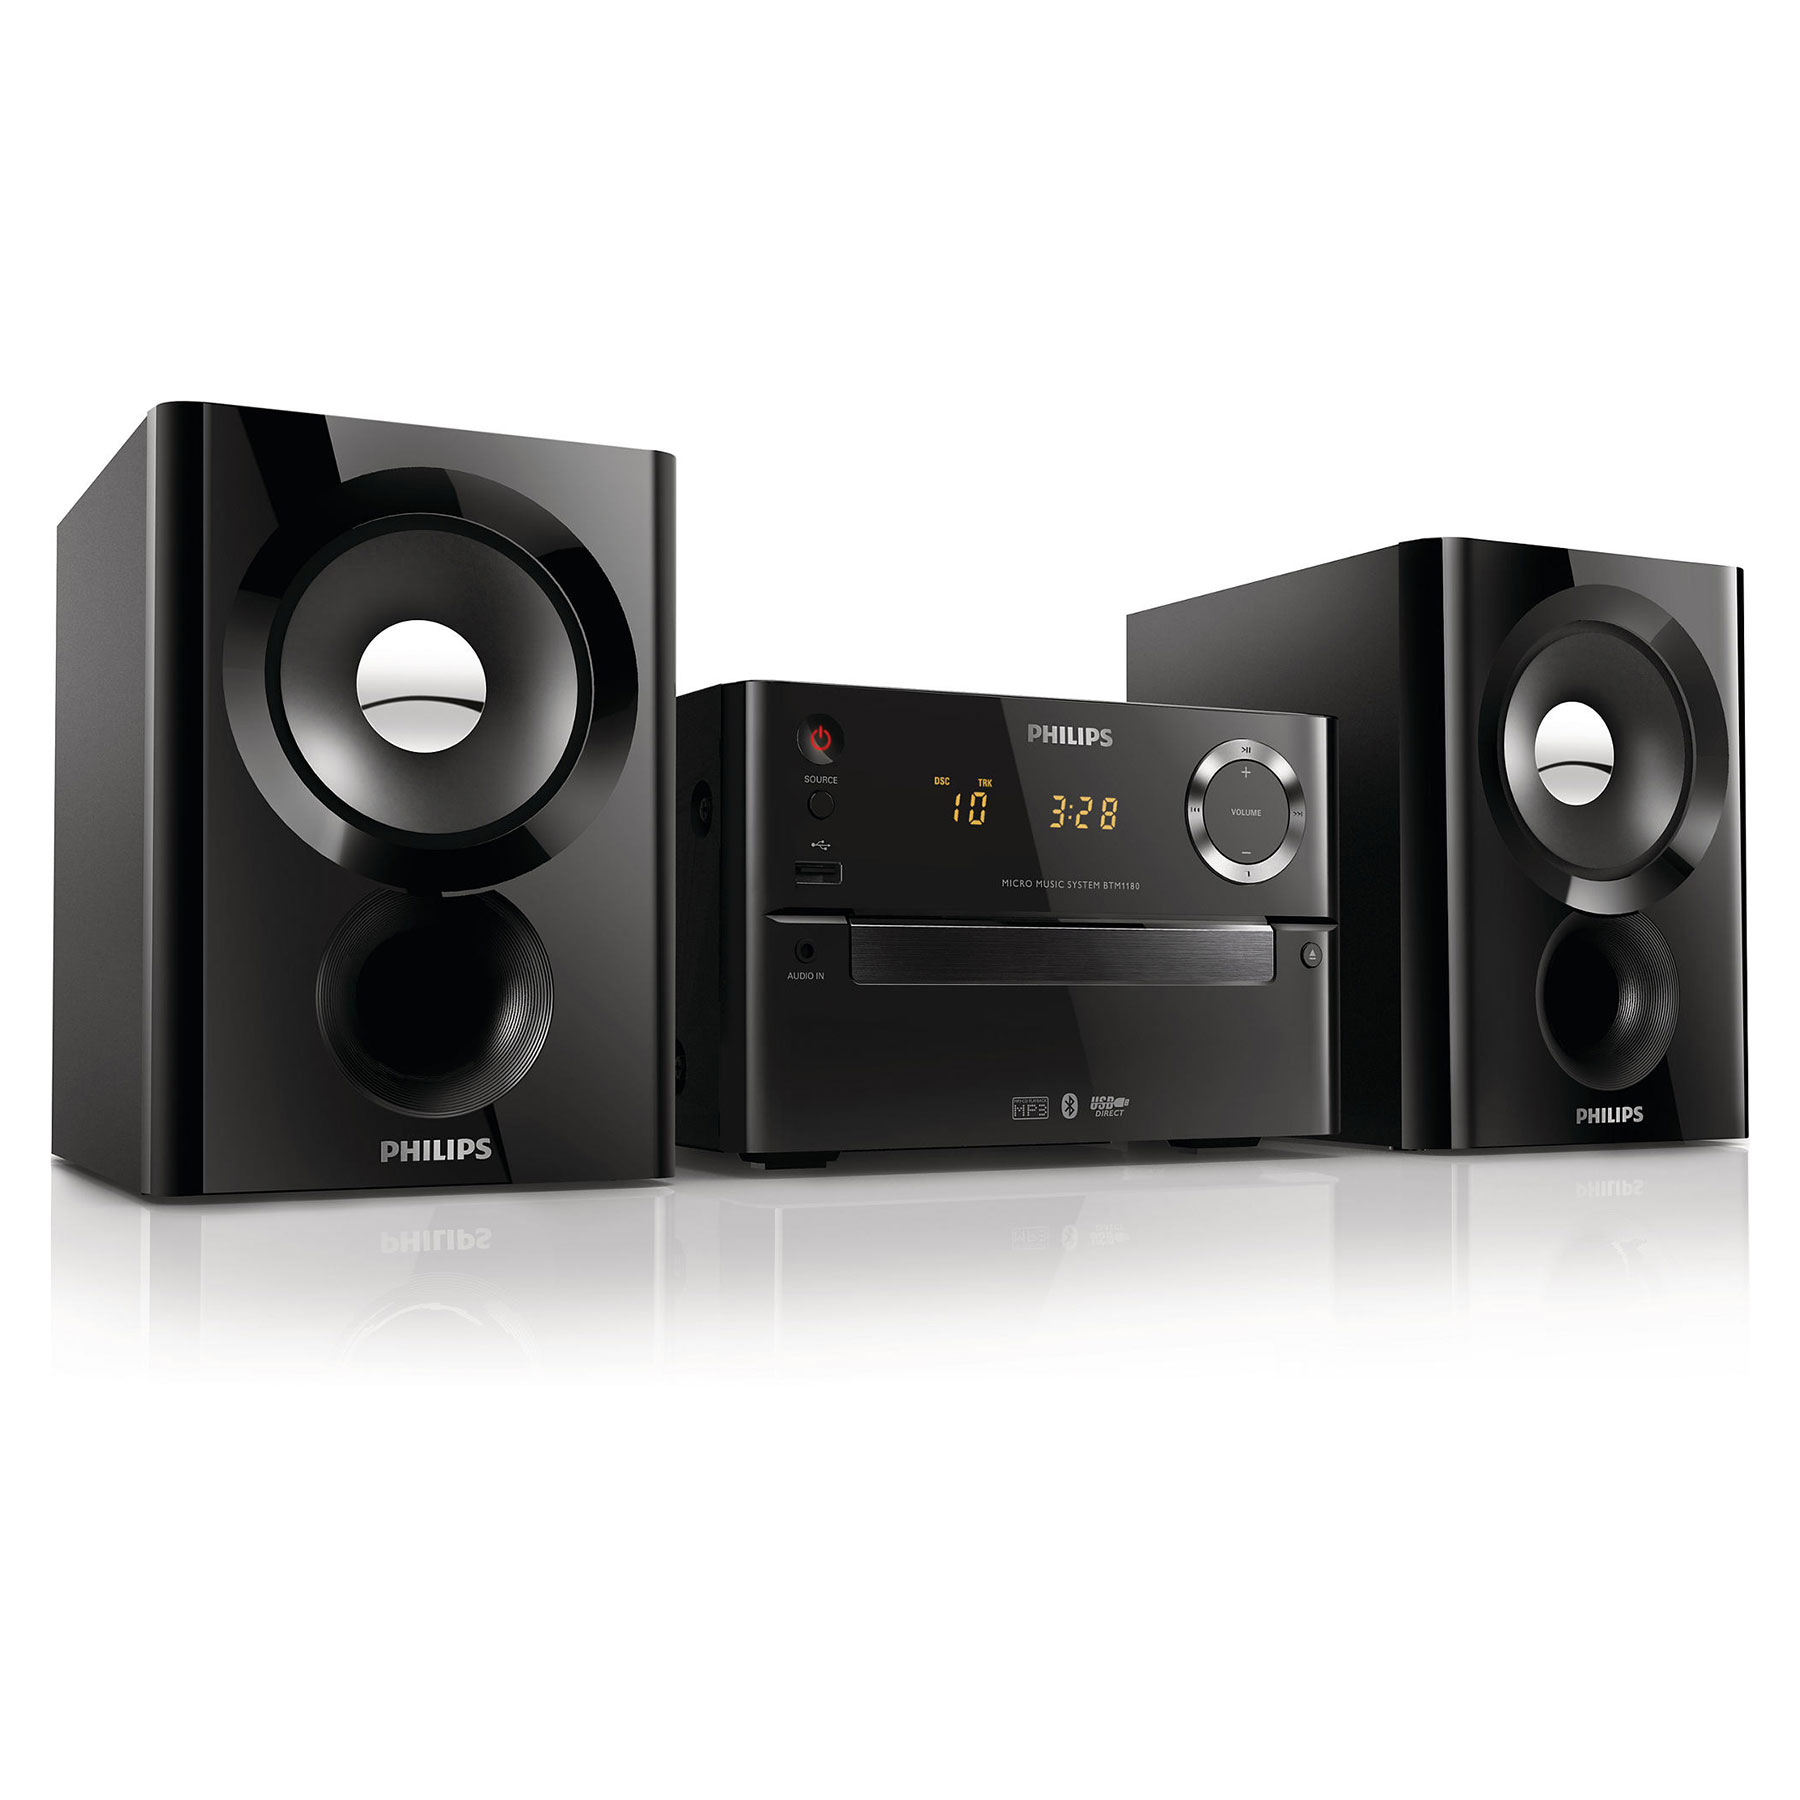 philips btm1180 cha ne hifi philips sur. Black Bedroom Furniture Sets. Home Design Ideas